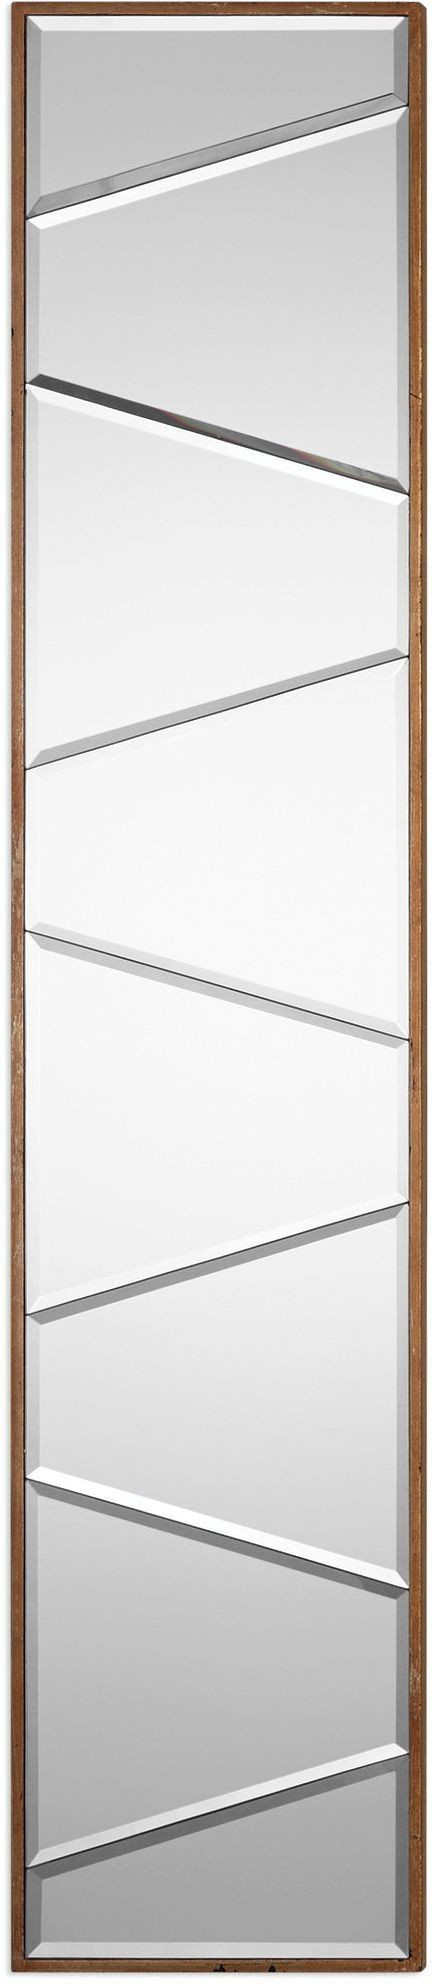 Zodia silver narrow beveled mirror 09146 uttermost for Narrow mirror